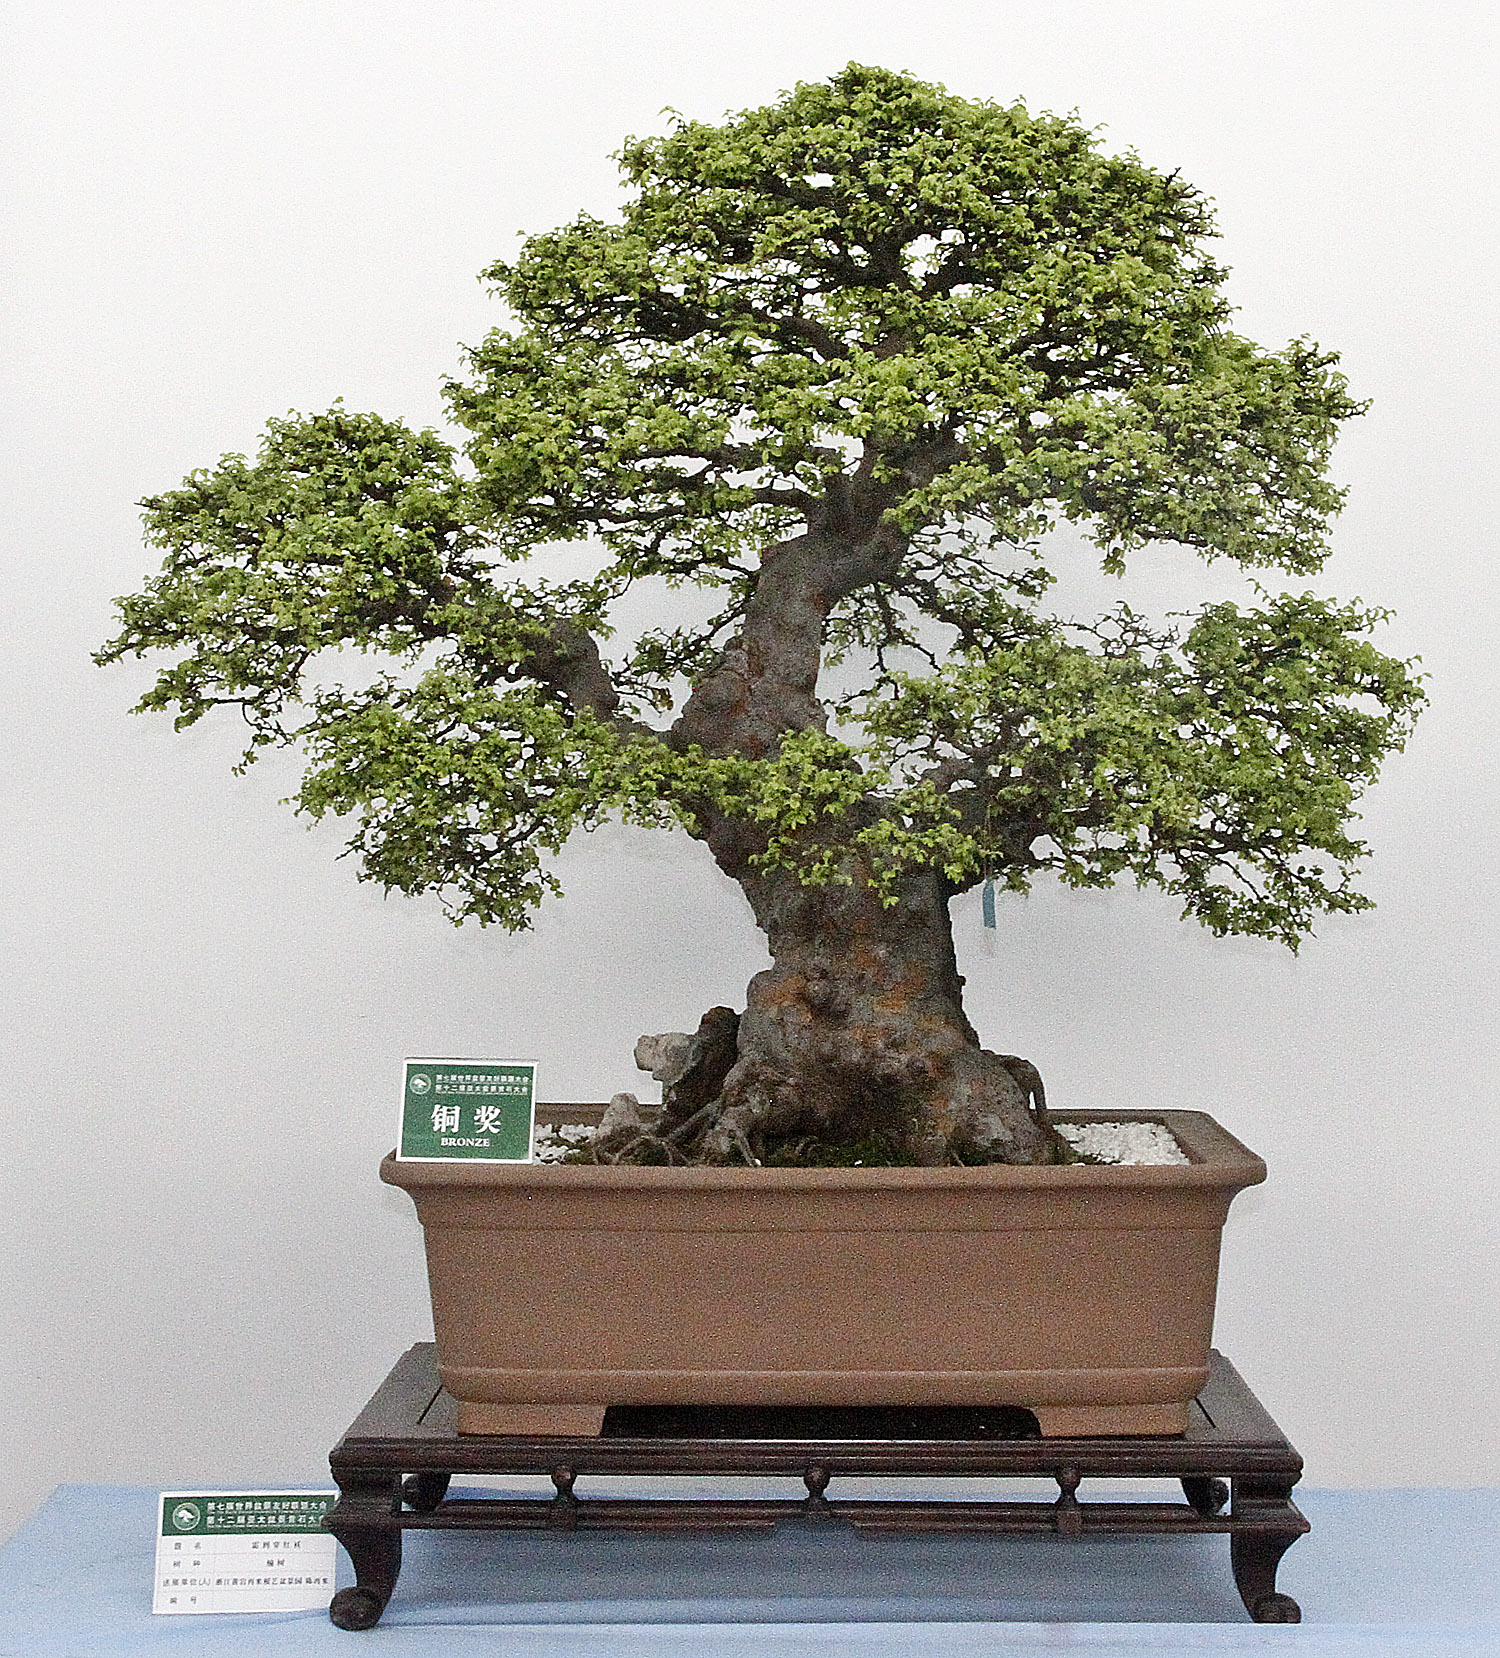 http://valavanisbonsaiblog.files.wordpress.com/2013/09/12-chinese-elm.jpg